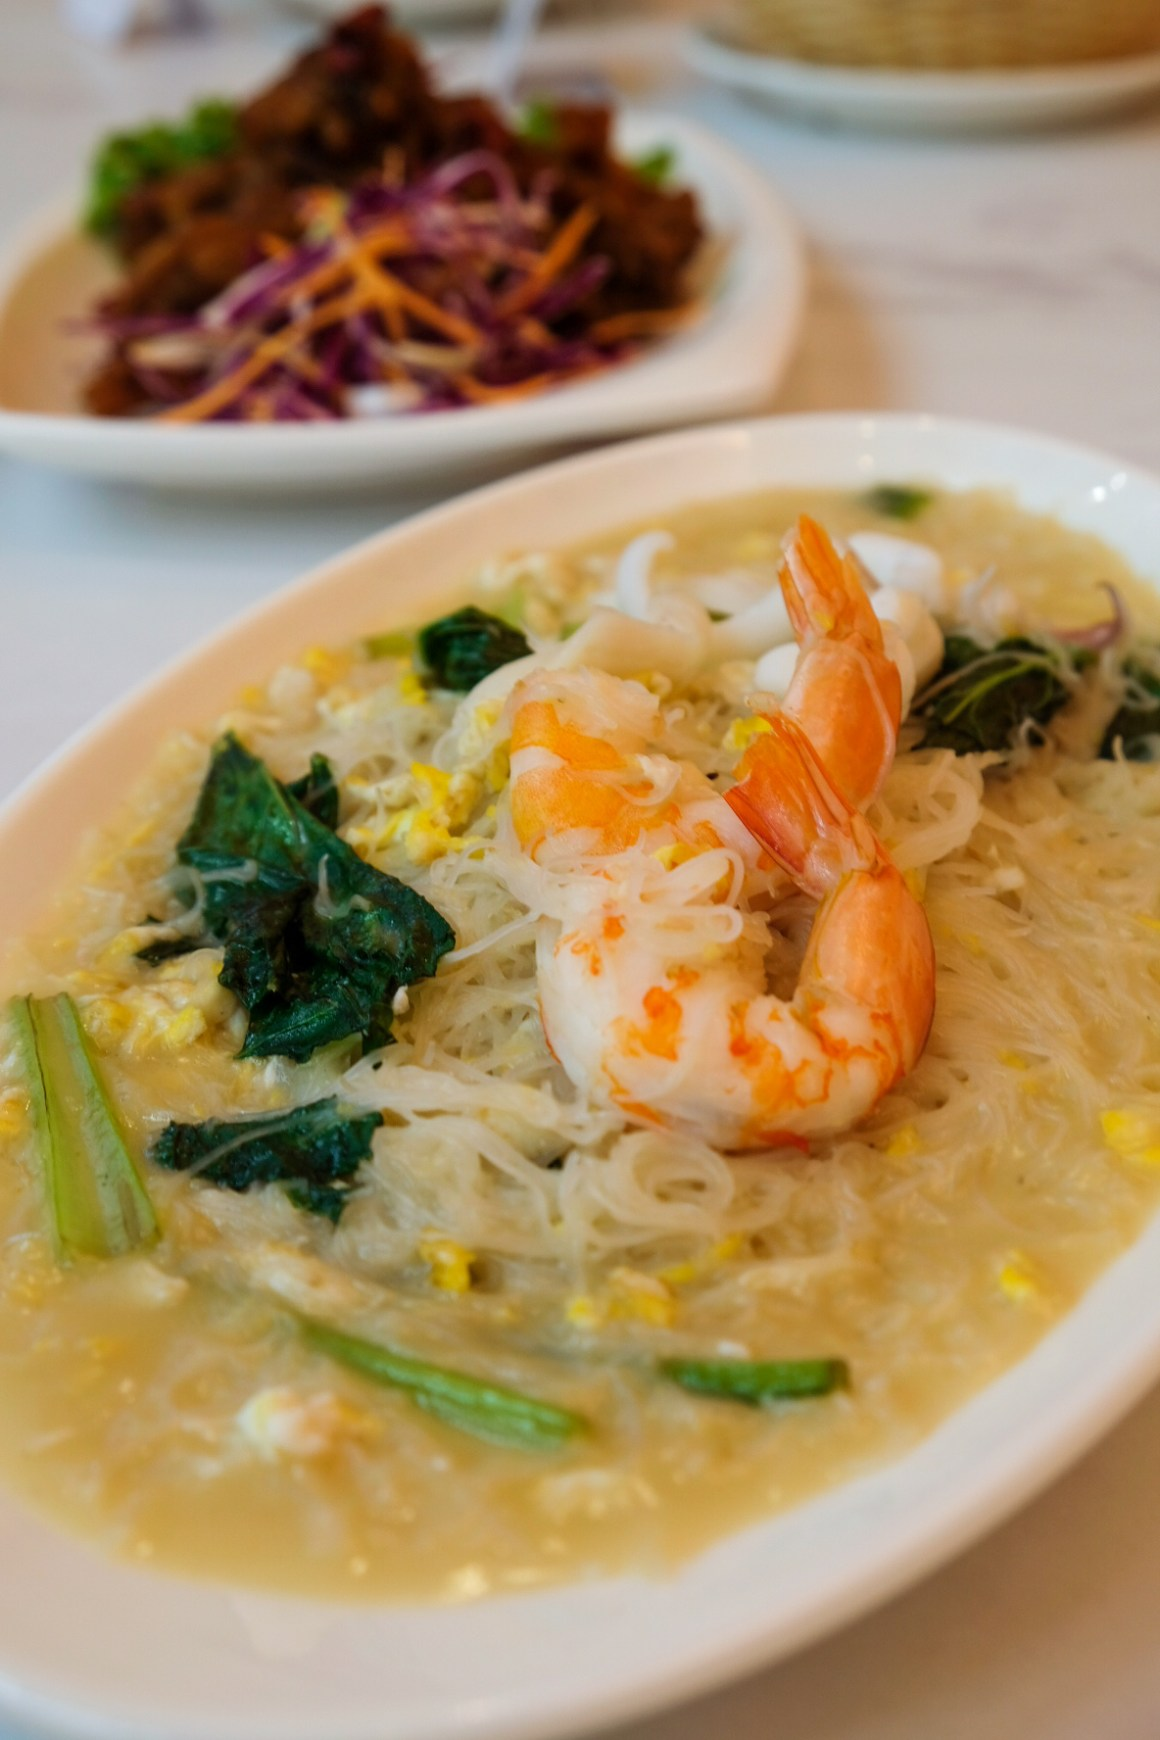 White Restaurant @ Suntec Serving Outlet Exclusive Mala Bee Hoon - The Original White Beehoon ($7 small)